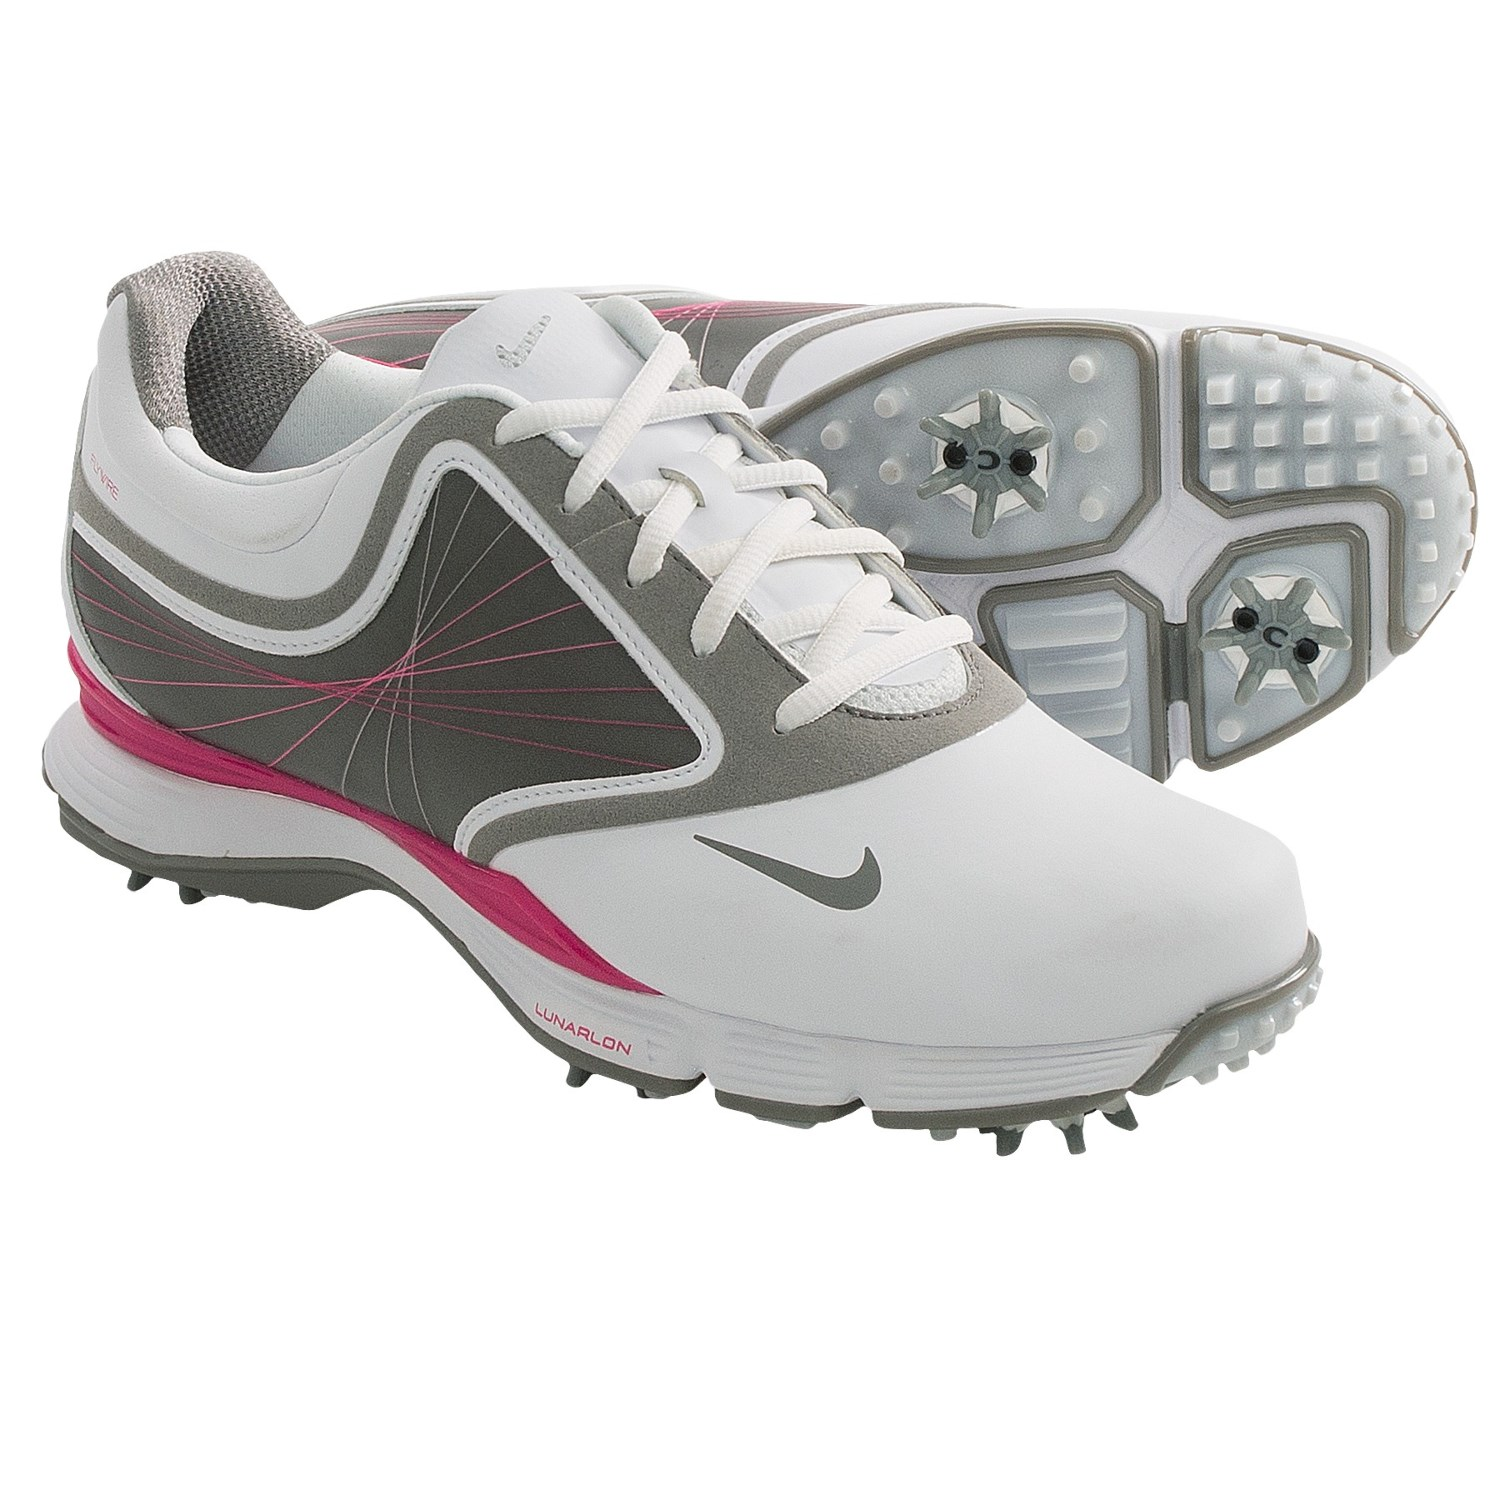 Nike Lunar Links III Golf Shoes (For Women) in White/Sport Grey/Pink